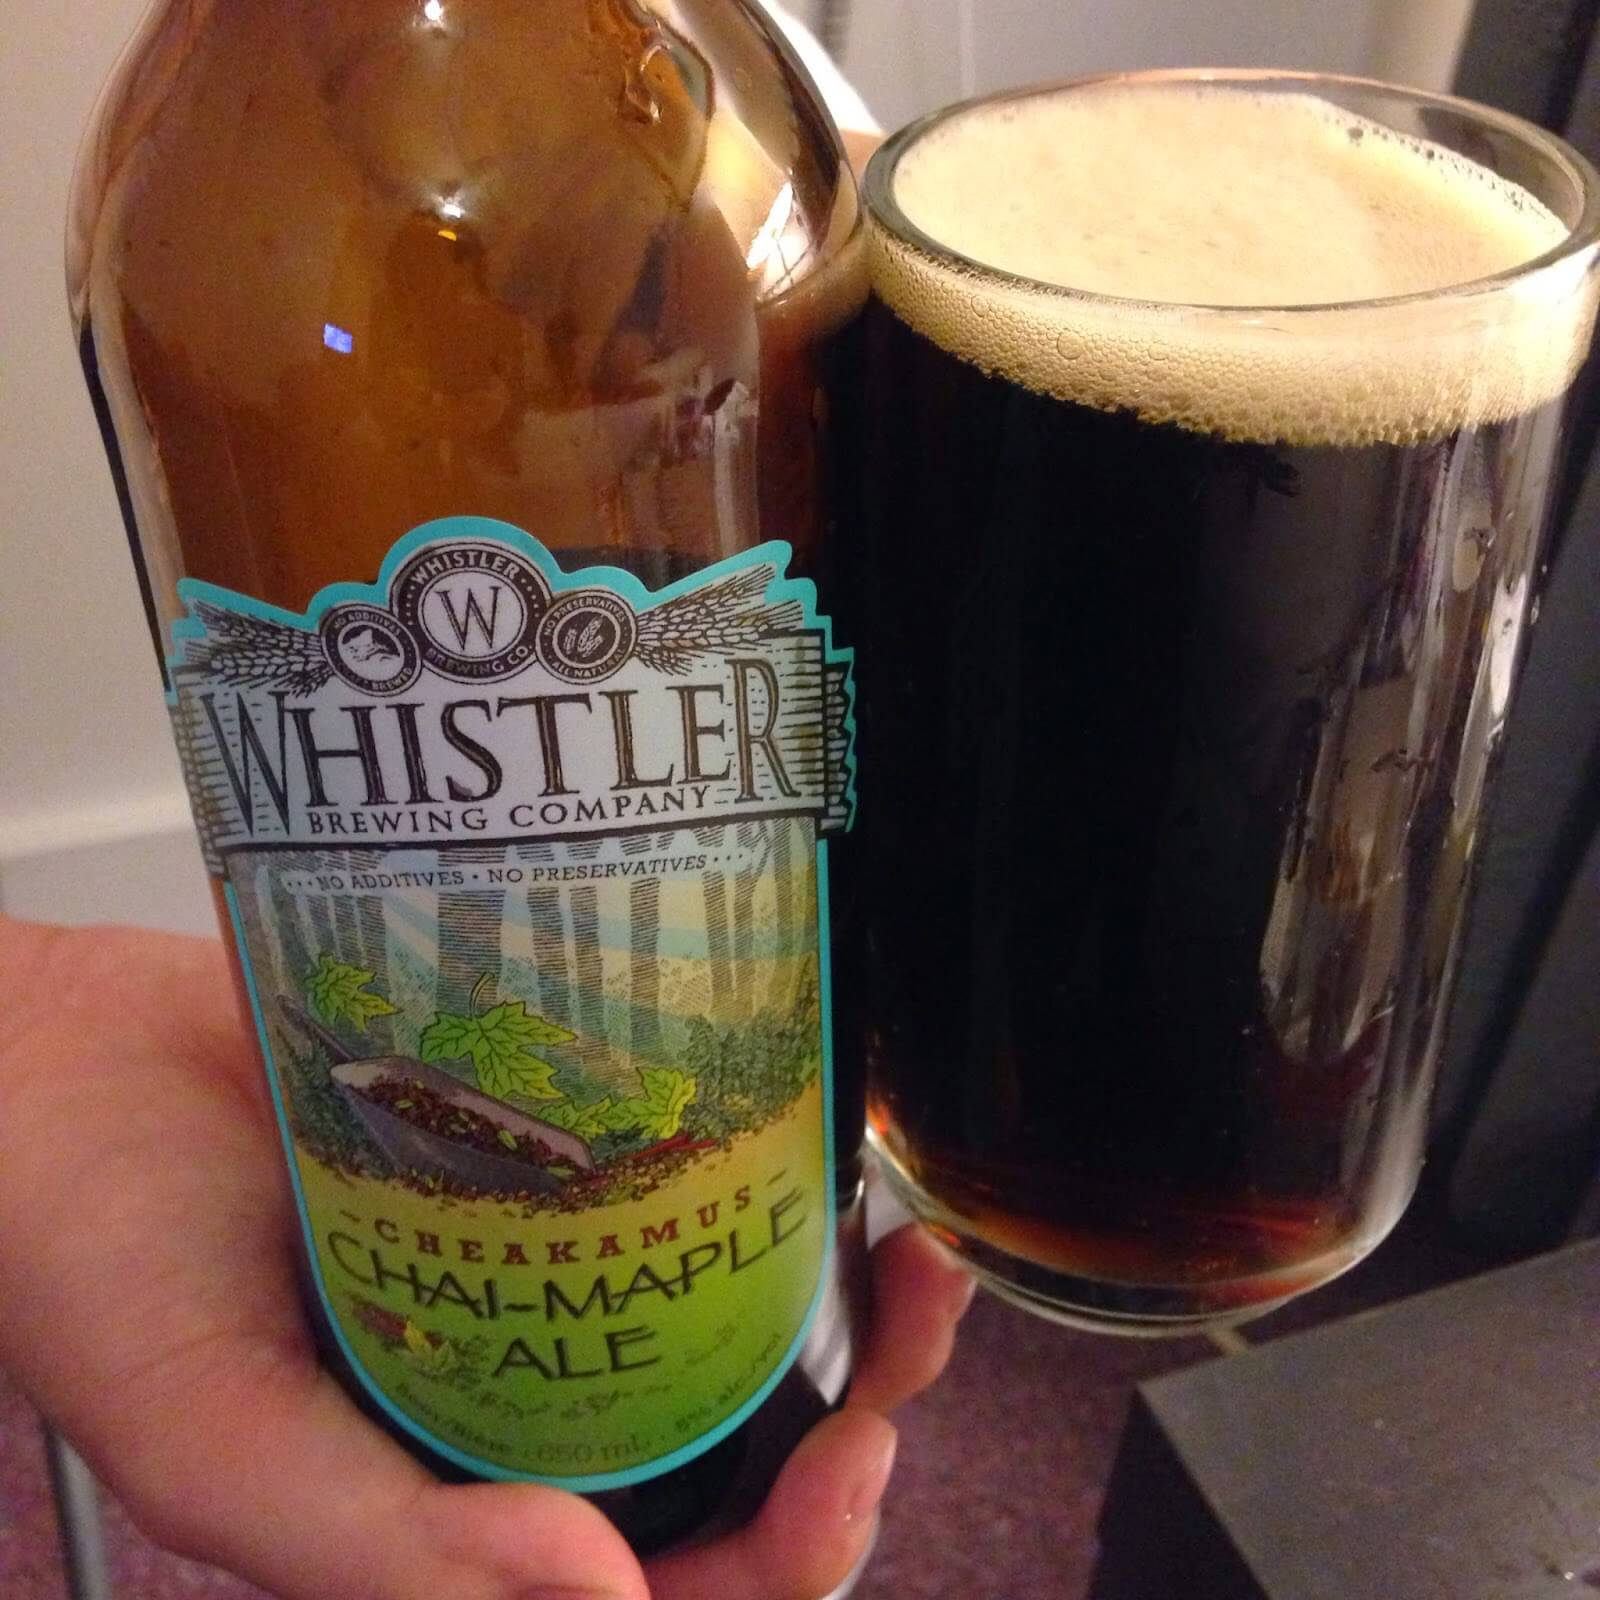 Whistler CHAI-MAPLE ALE